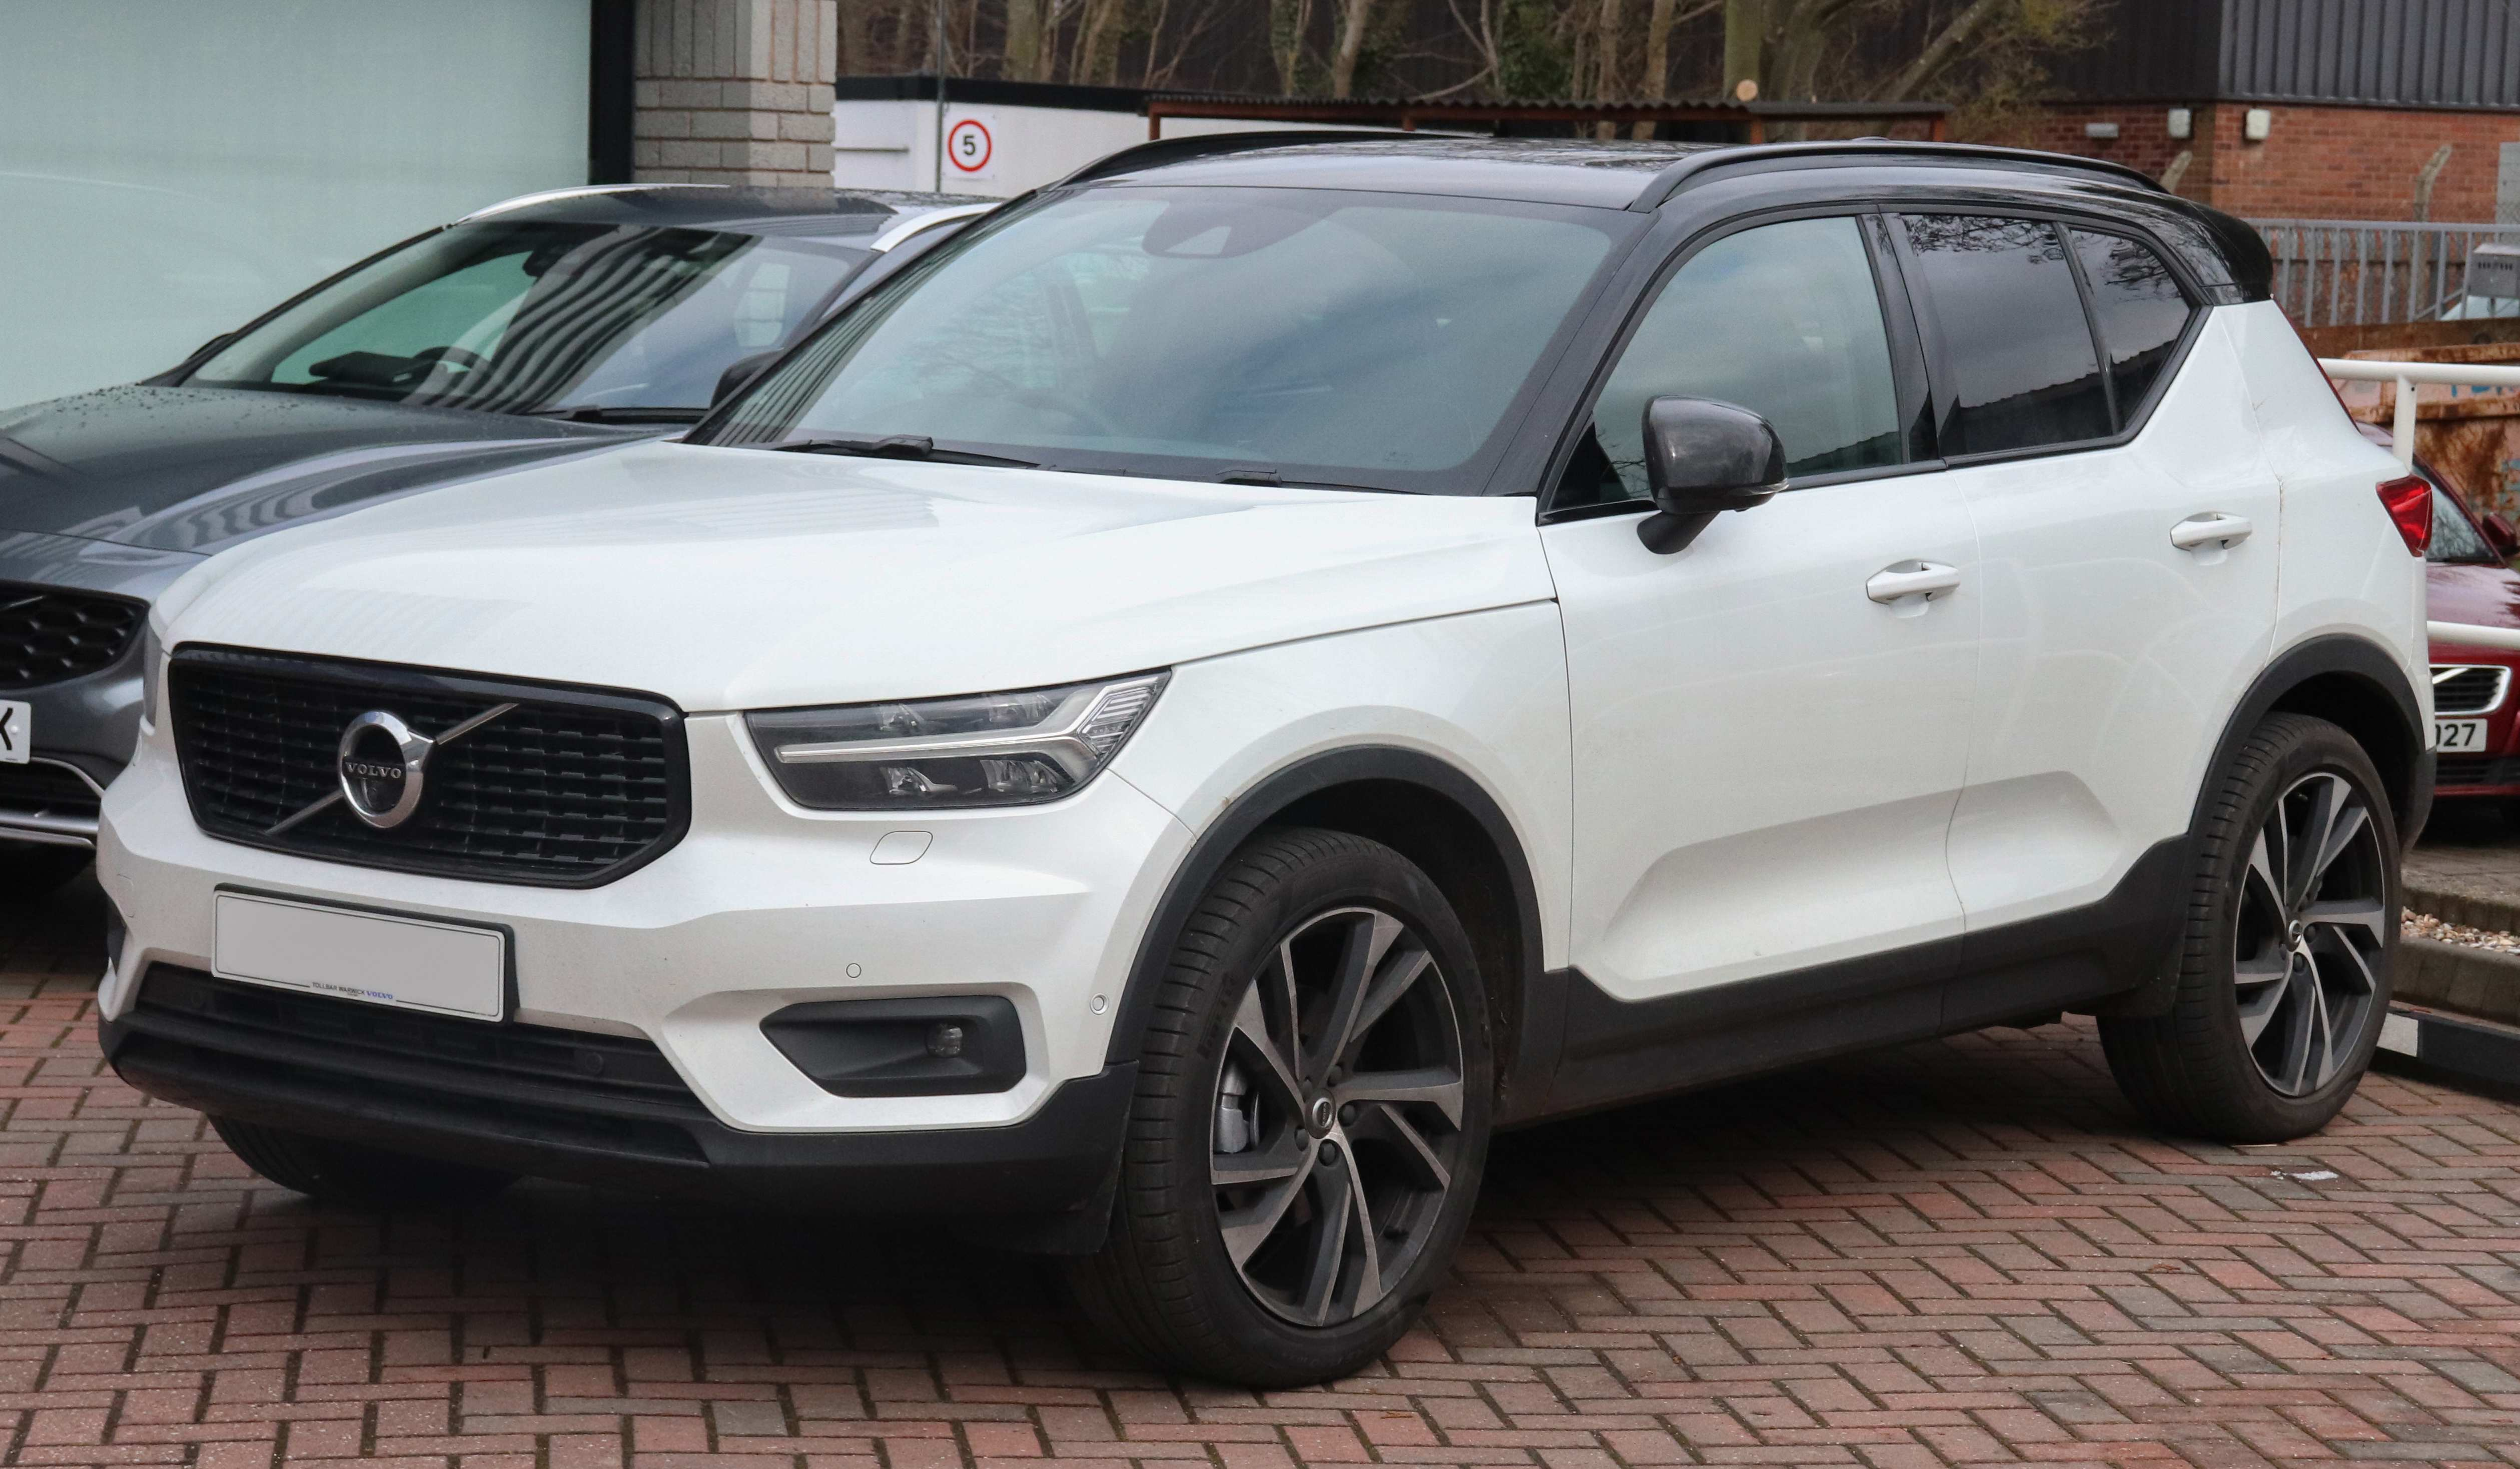 62 All New 2019 Volvo Xc40 Length Reviews